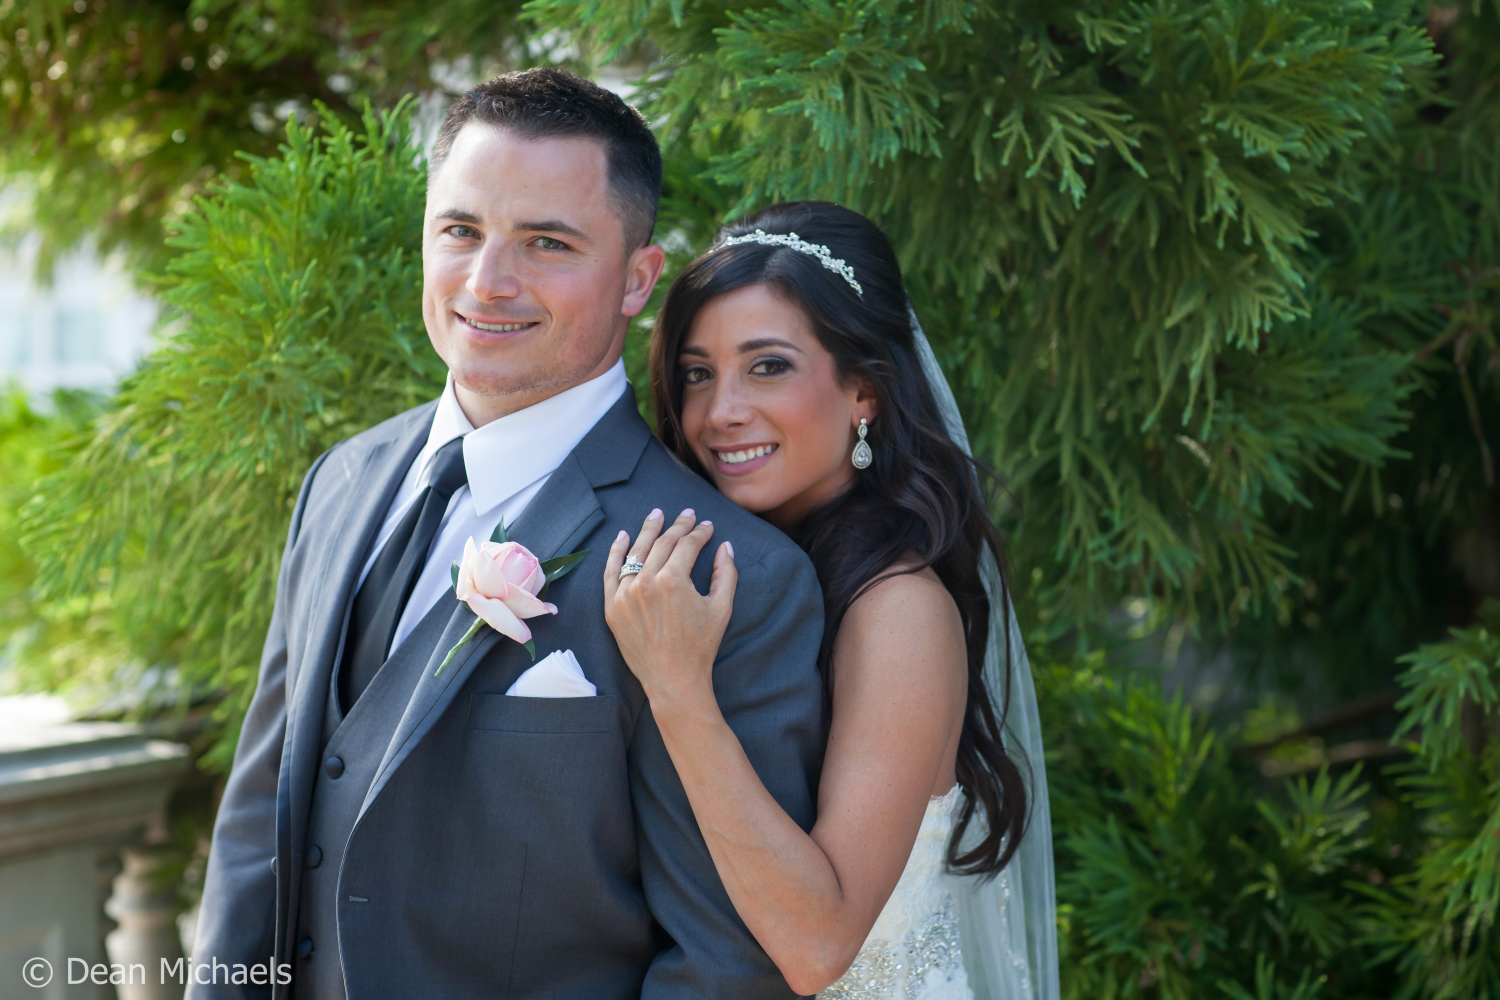 wedding-photographer-gallery-2-NDEGN73CCP69.jpg